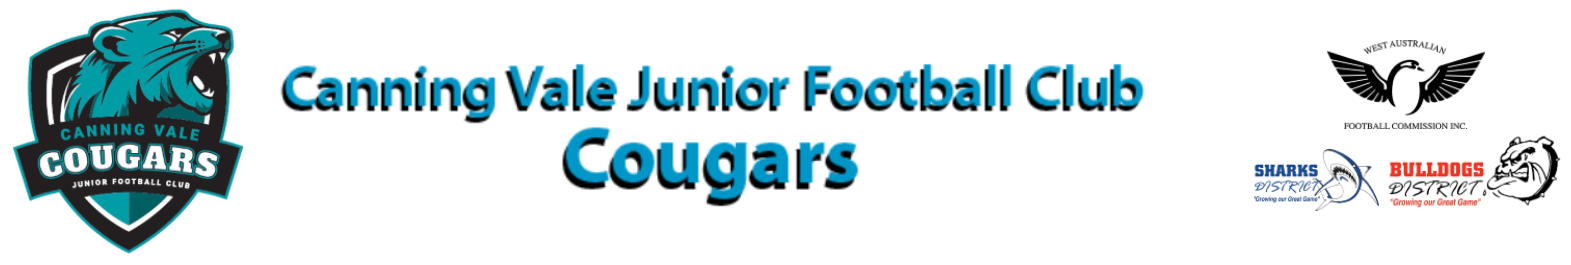 Canning Vale Junior Football Club